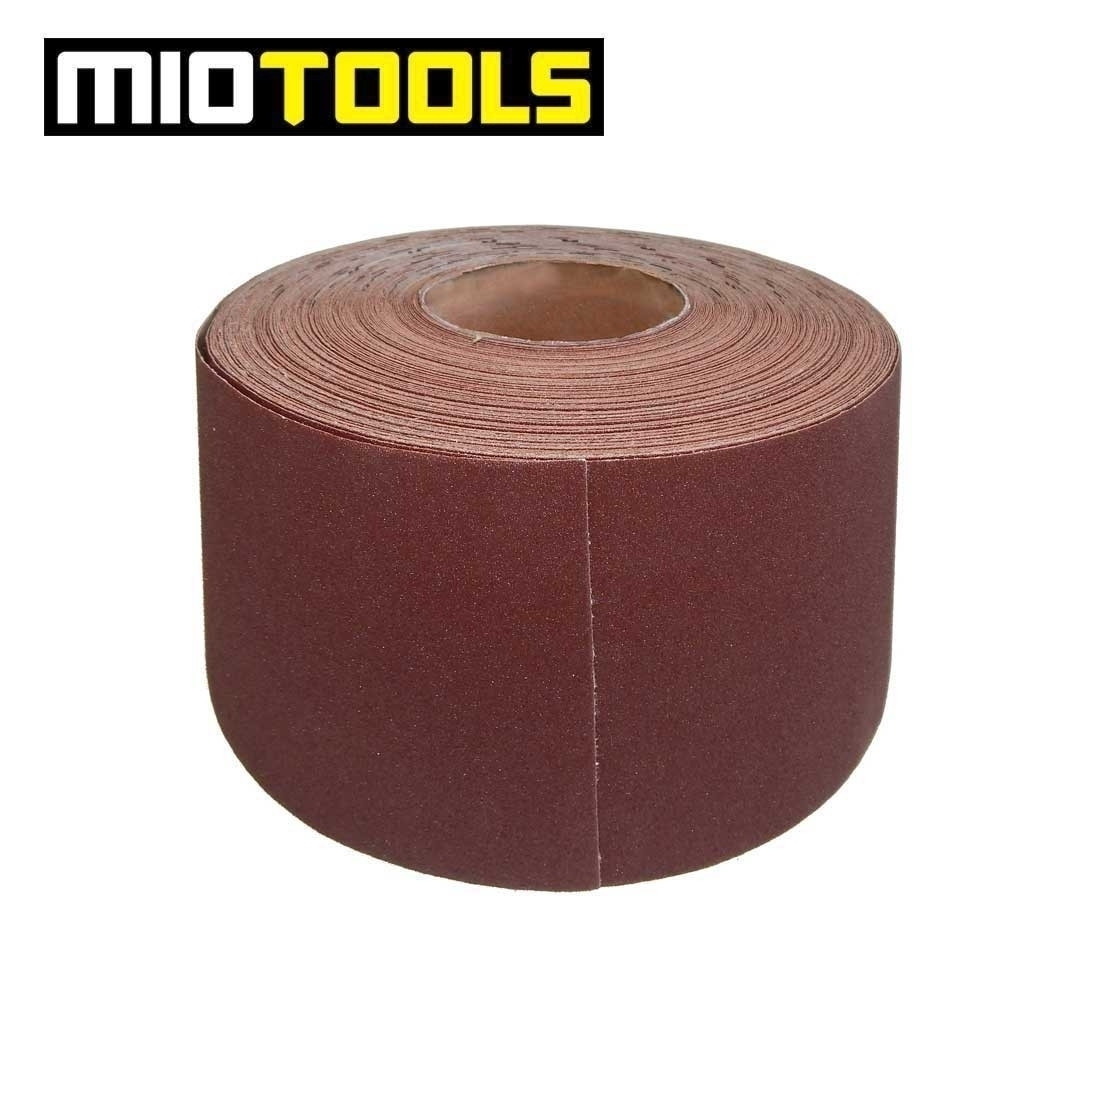 MioTools sanding paper roll for hand sanders / 115 mm x 50 m / Aluminium Oxide